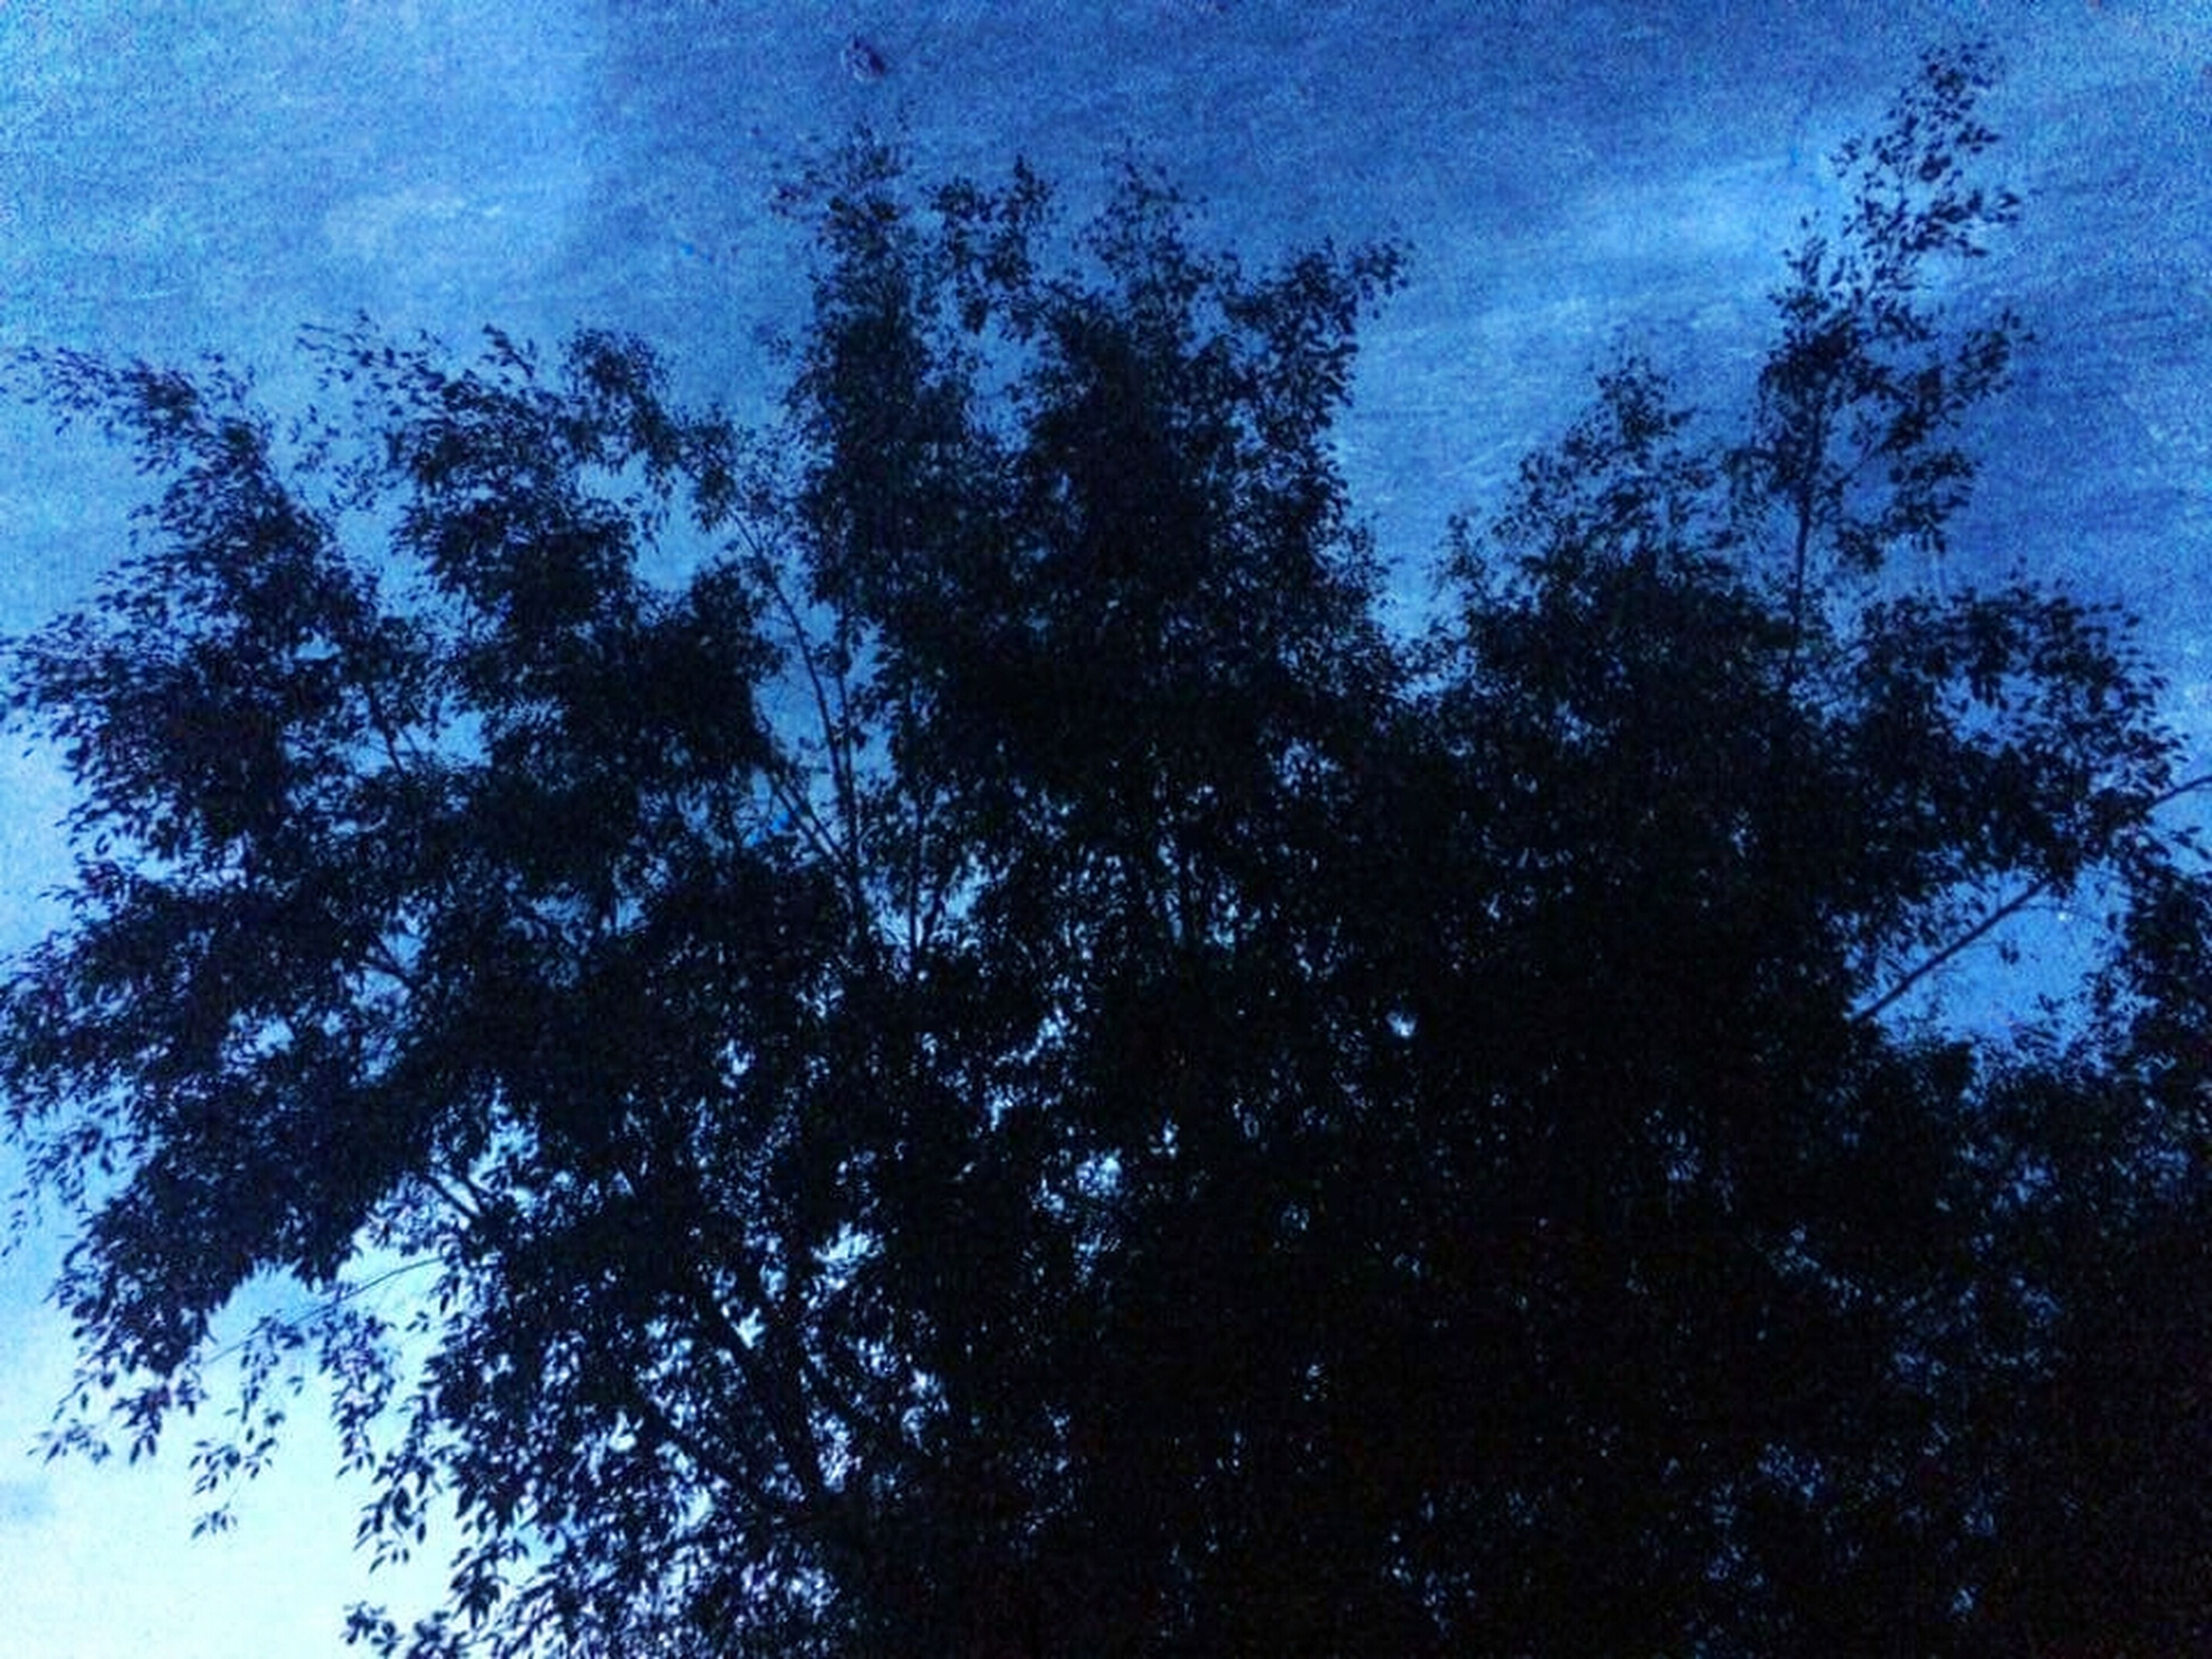 tree, low angle view, sky, blue, tranquility, growth, nature, beauty in nature, branch, scenics, tranquil scene, cloud - sky, silhouette, outdoors, no people, day, cloud, backgrounds, idyllic, high section